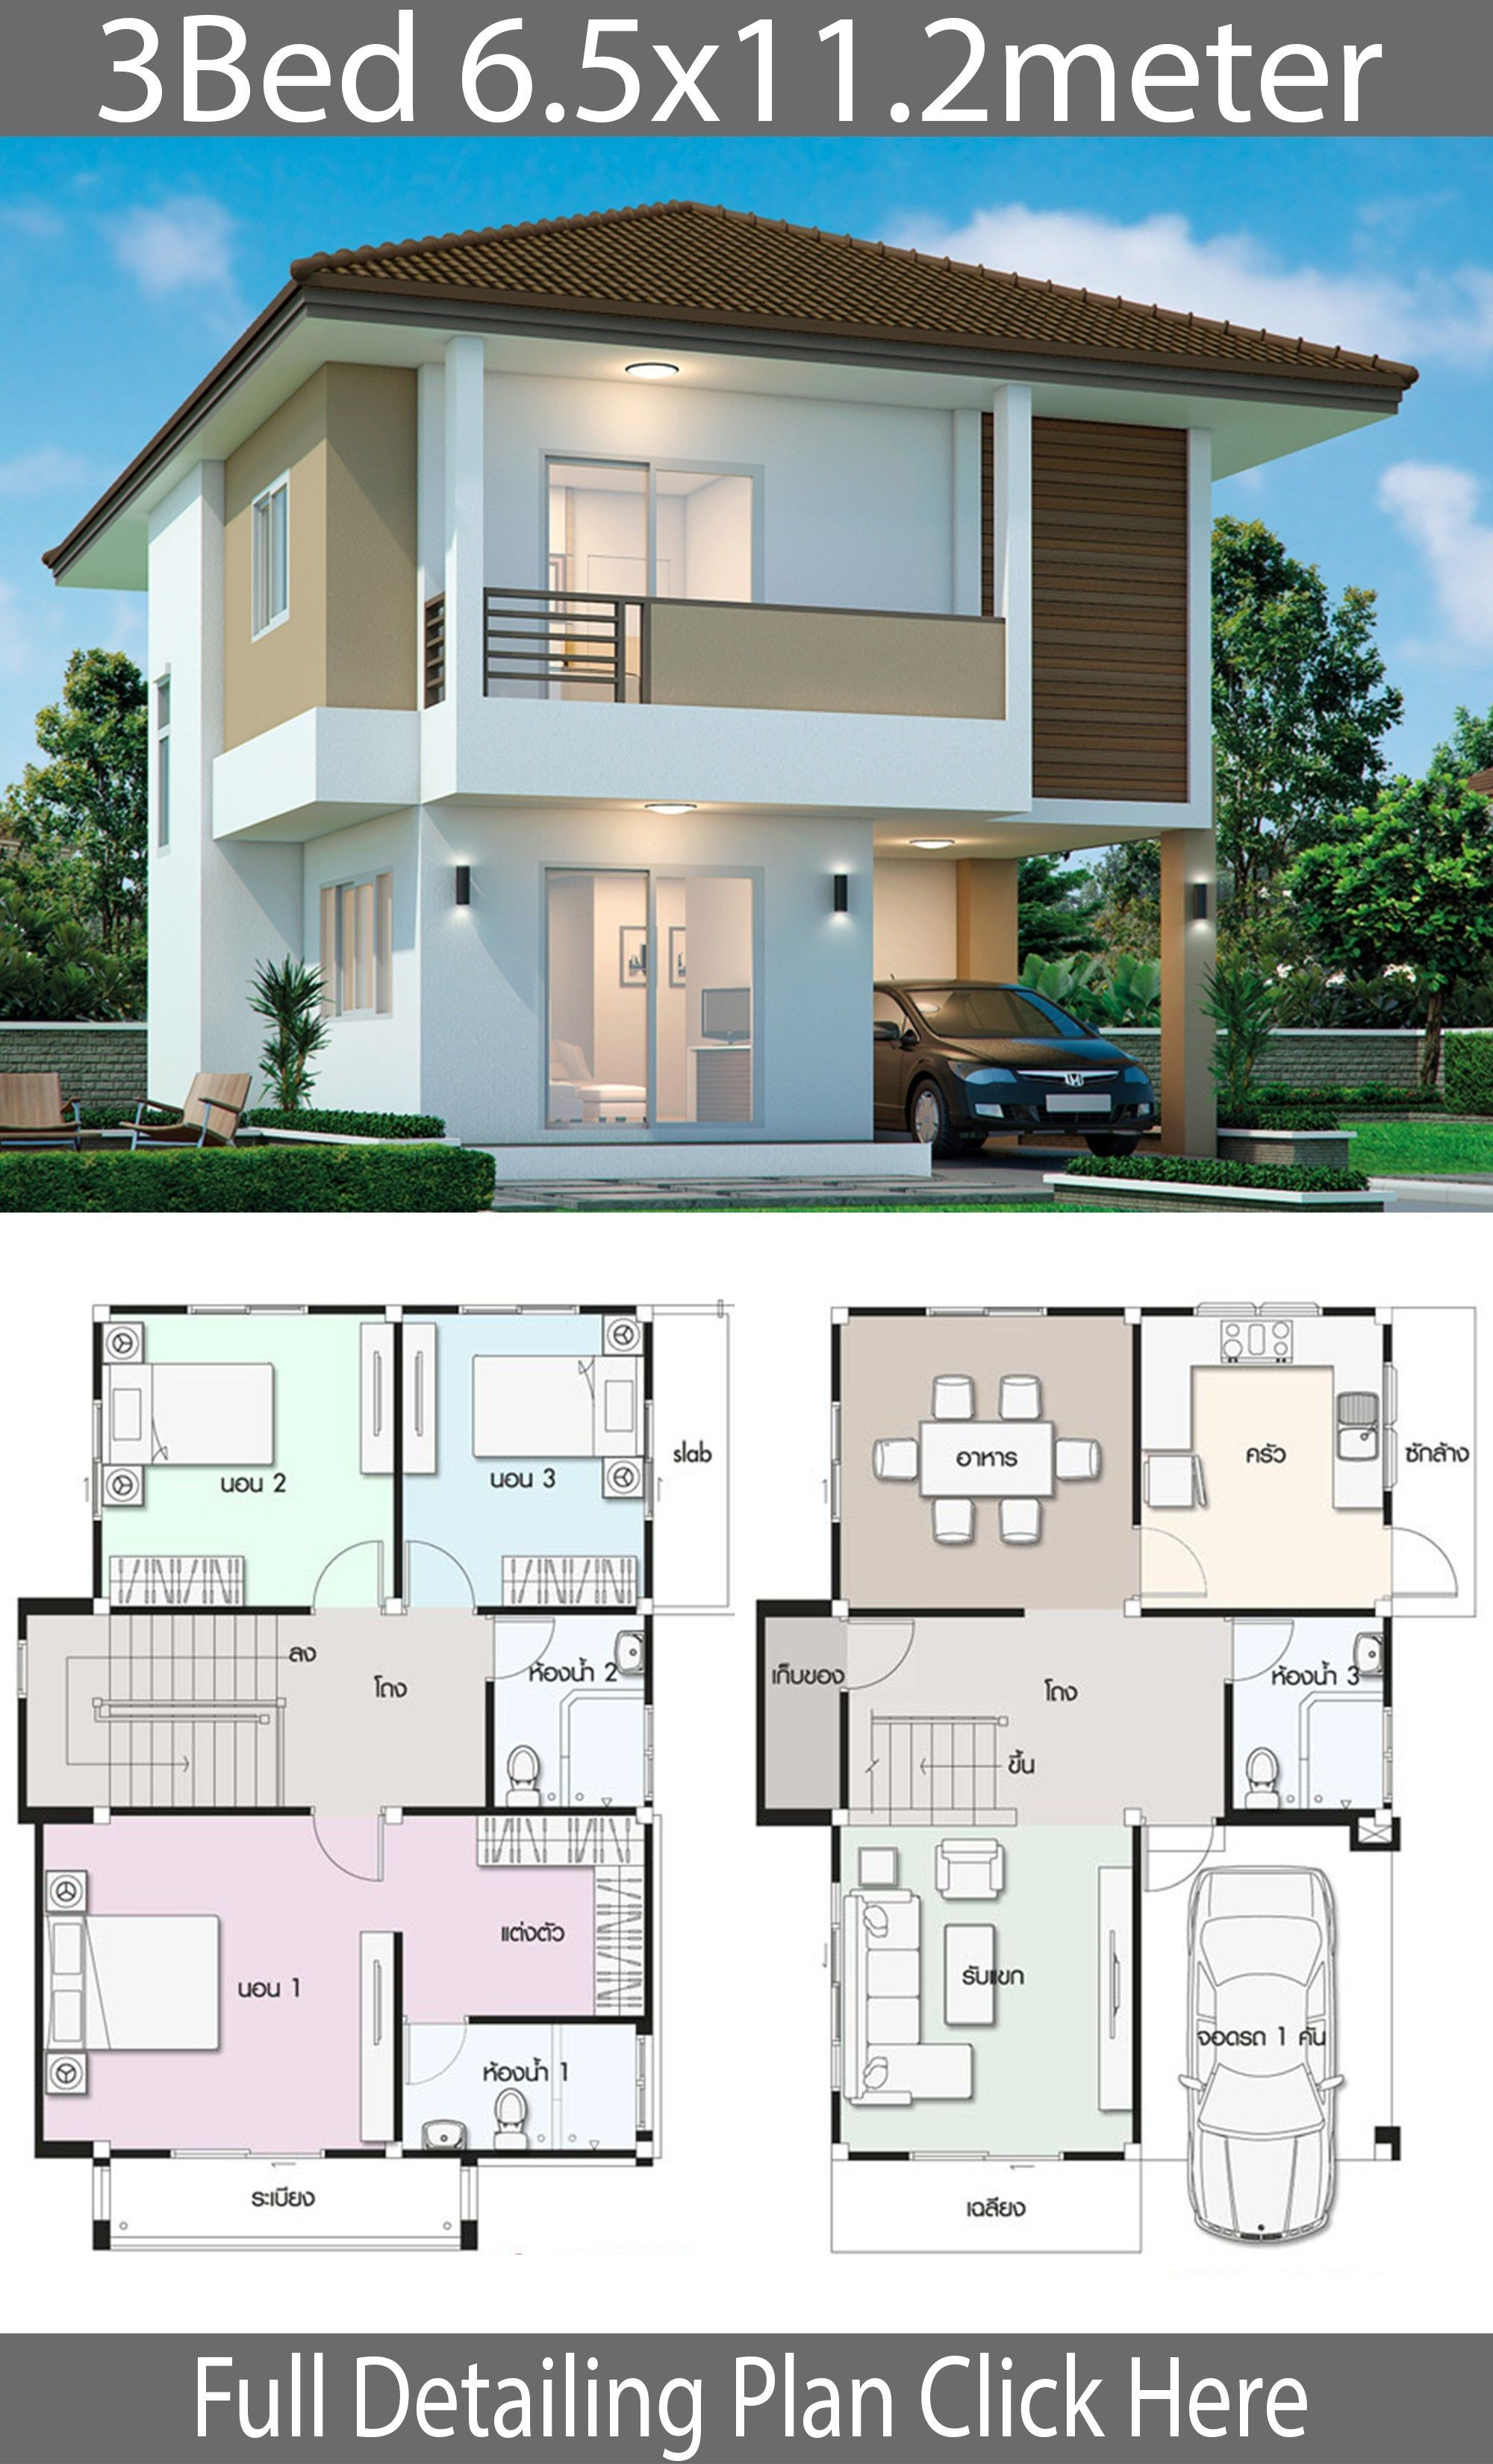 House Design Plan 6 5x11 2m With 3 Bedrooms Home Design With Plan House Plans Mansion House Front Design House Blueprints